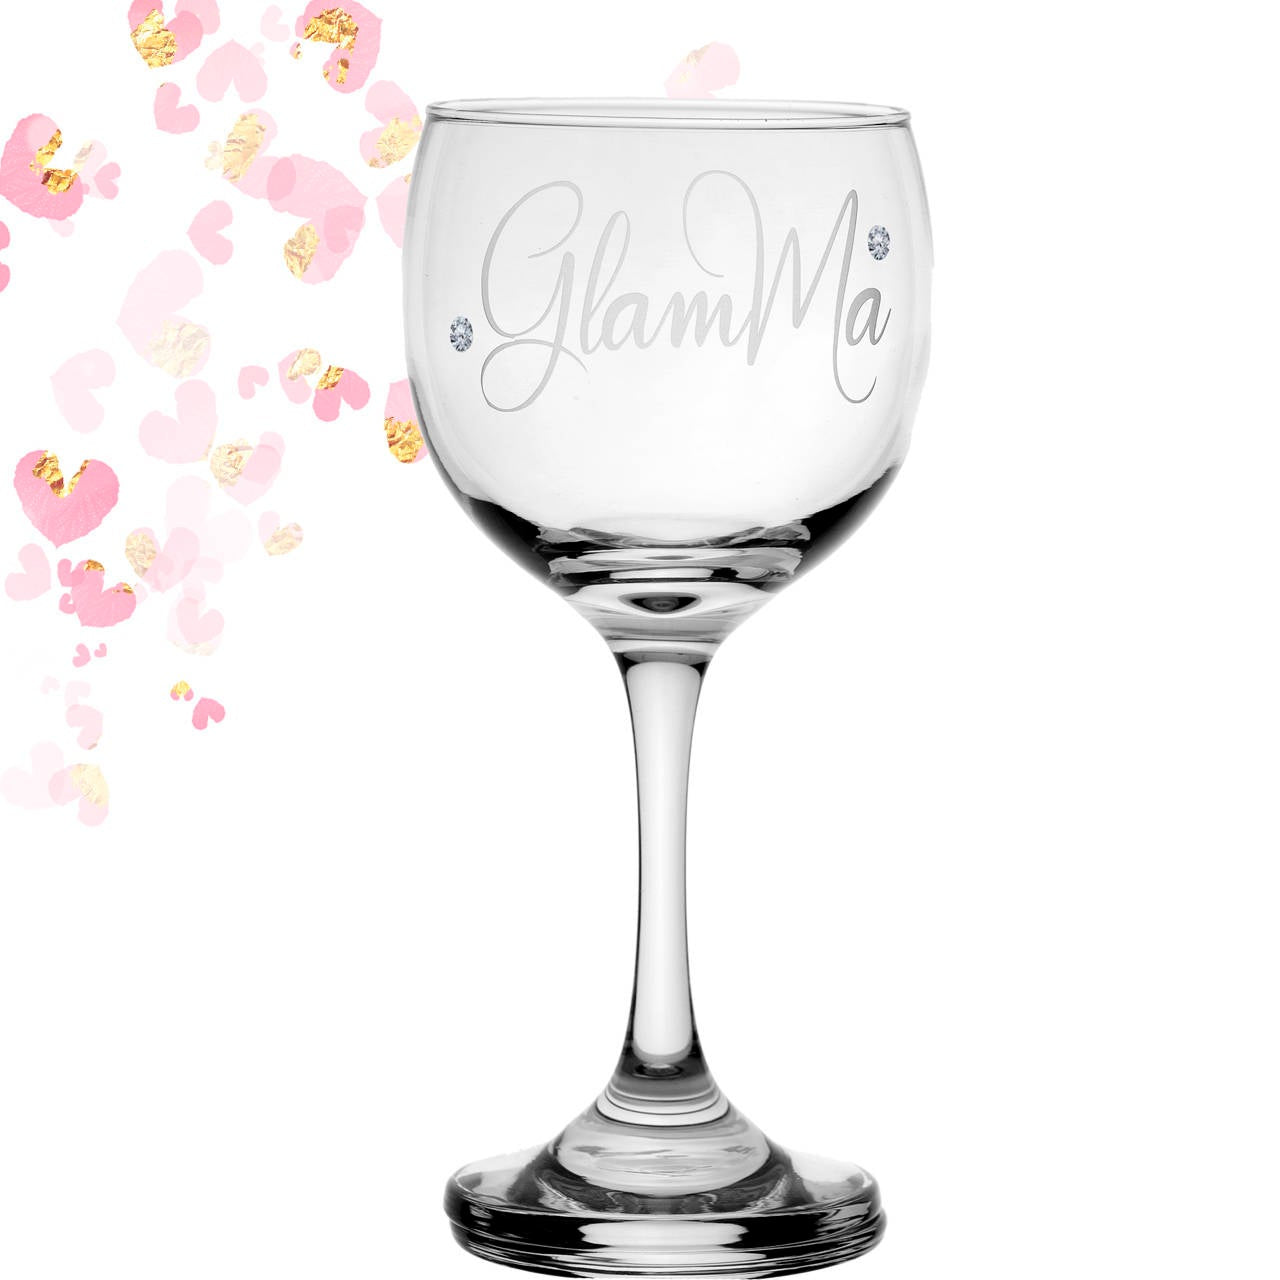 GlamMa Glamma Grandmother Grandma 10 oz Wine Glass with Crystals Gift for Her